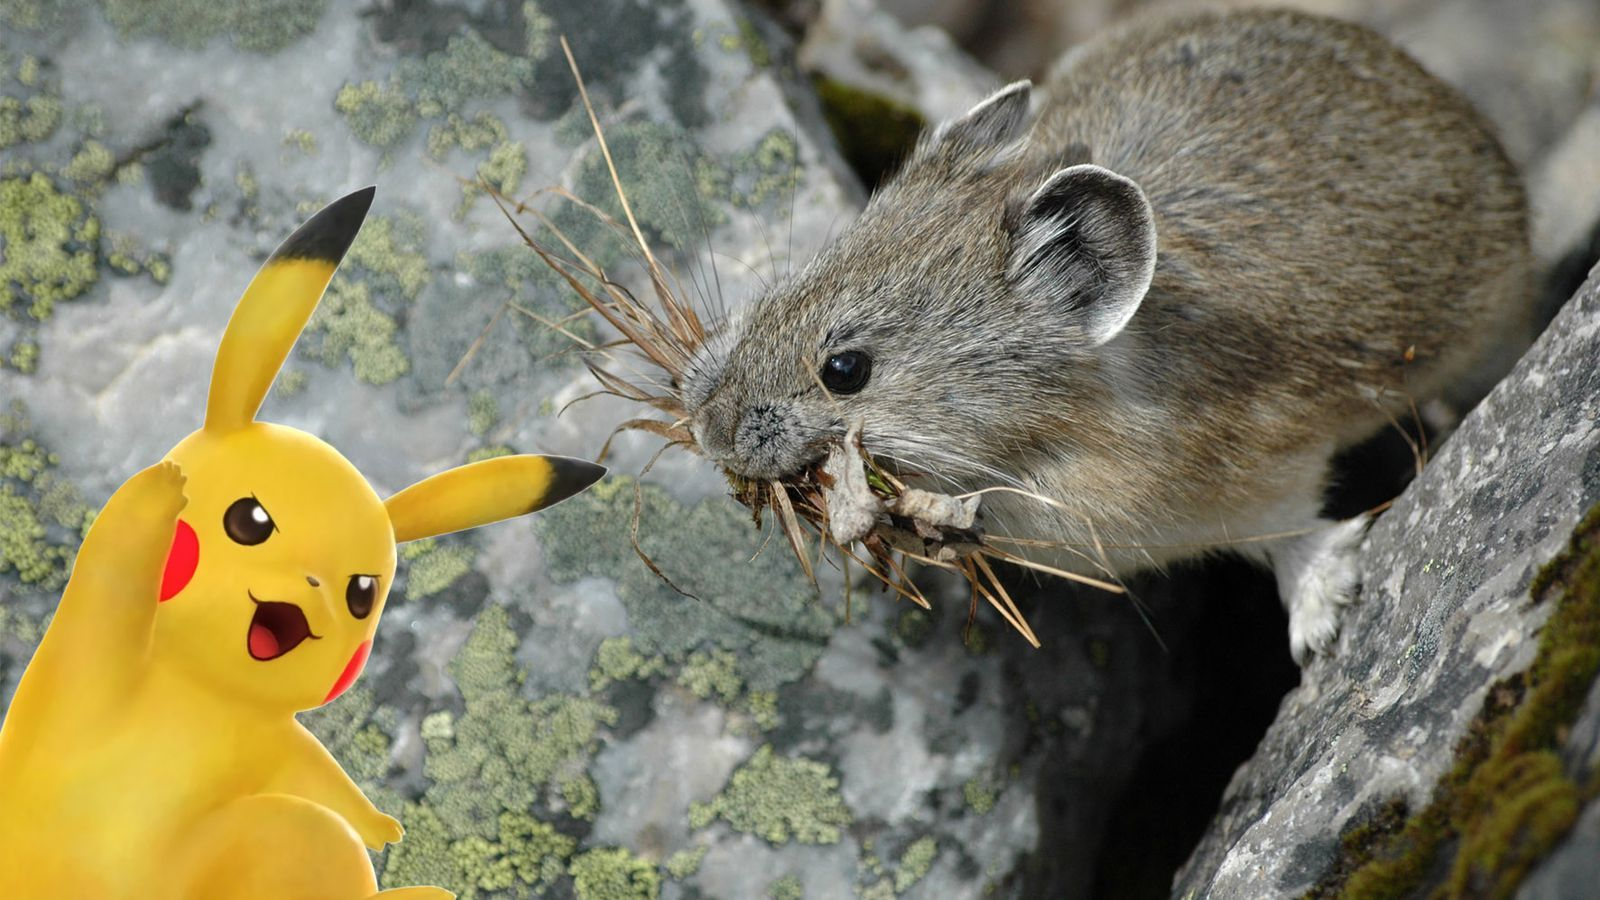 The Verge Review Of Animals Pika Vs Pikachu The Verge